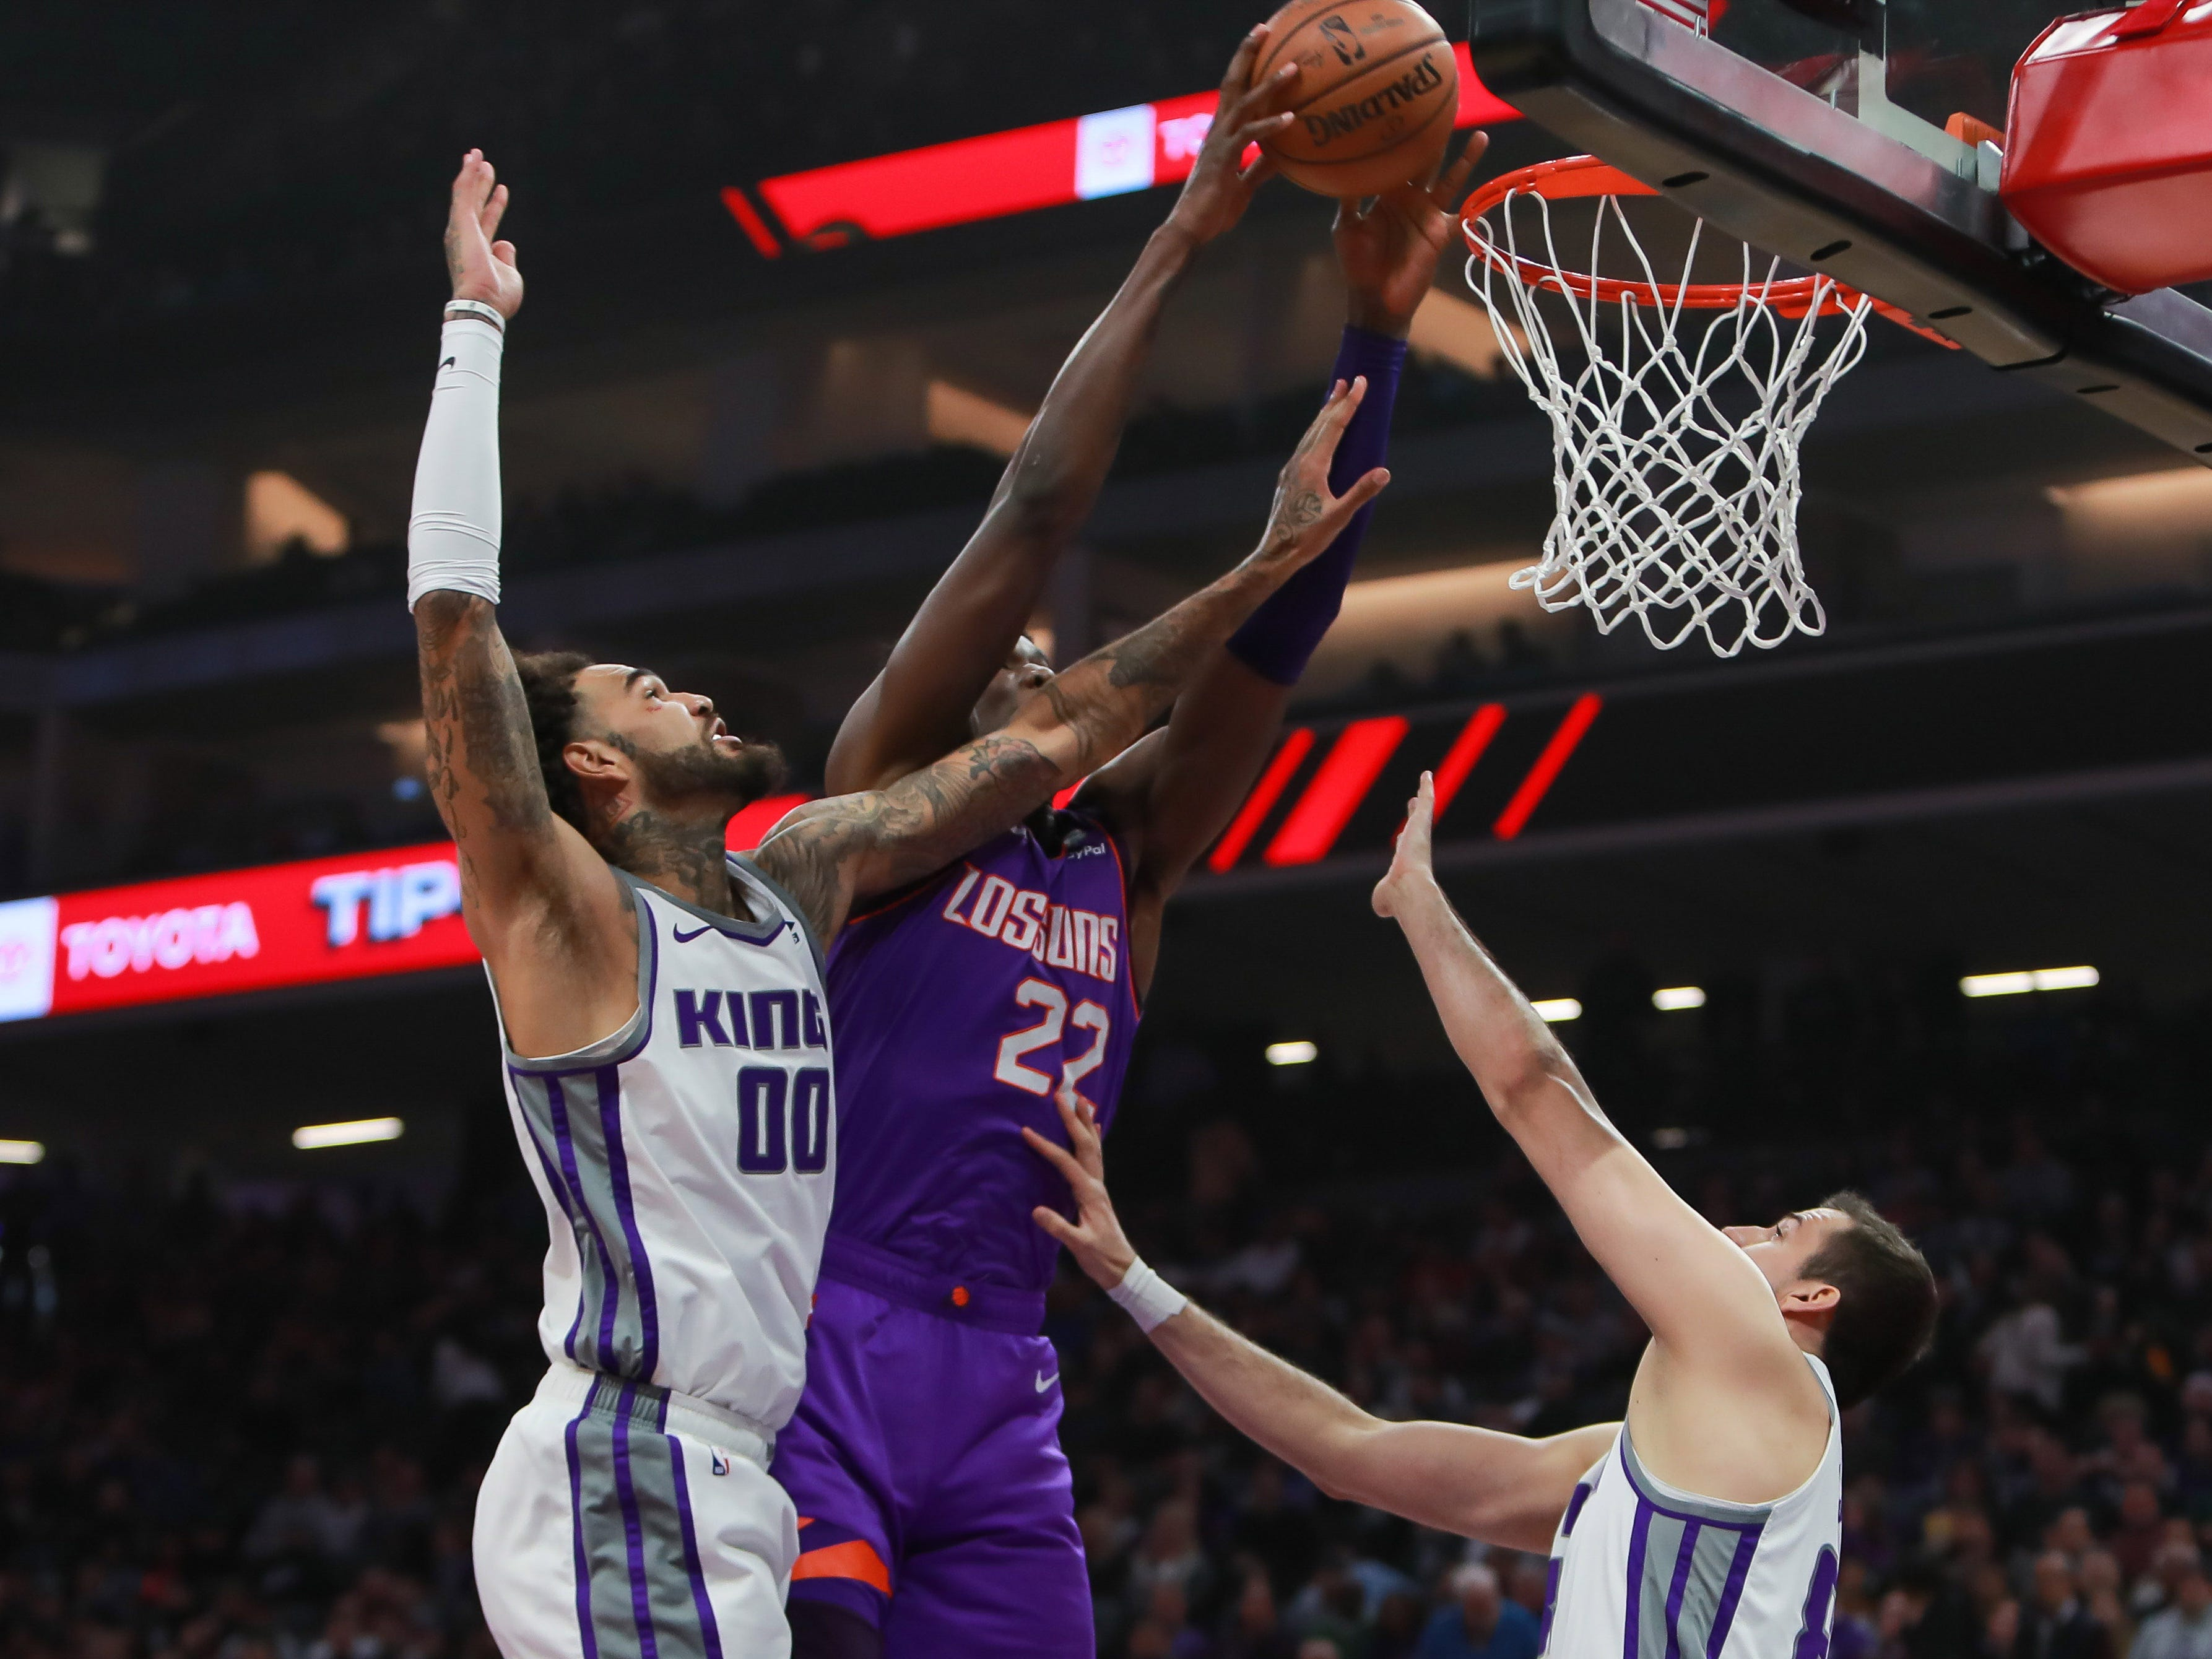 Mar 23, 2019; Sacramento, CA, USA; Phoenix Suns center Deandre Ayton (22) dunks the ball over Sacramento Kings forward Nemanja Bjelica (88) during the first quarter at Golden 1 Center.